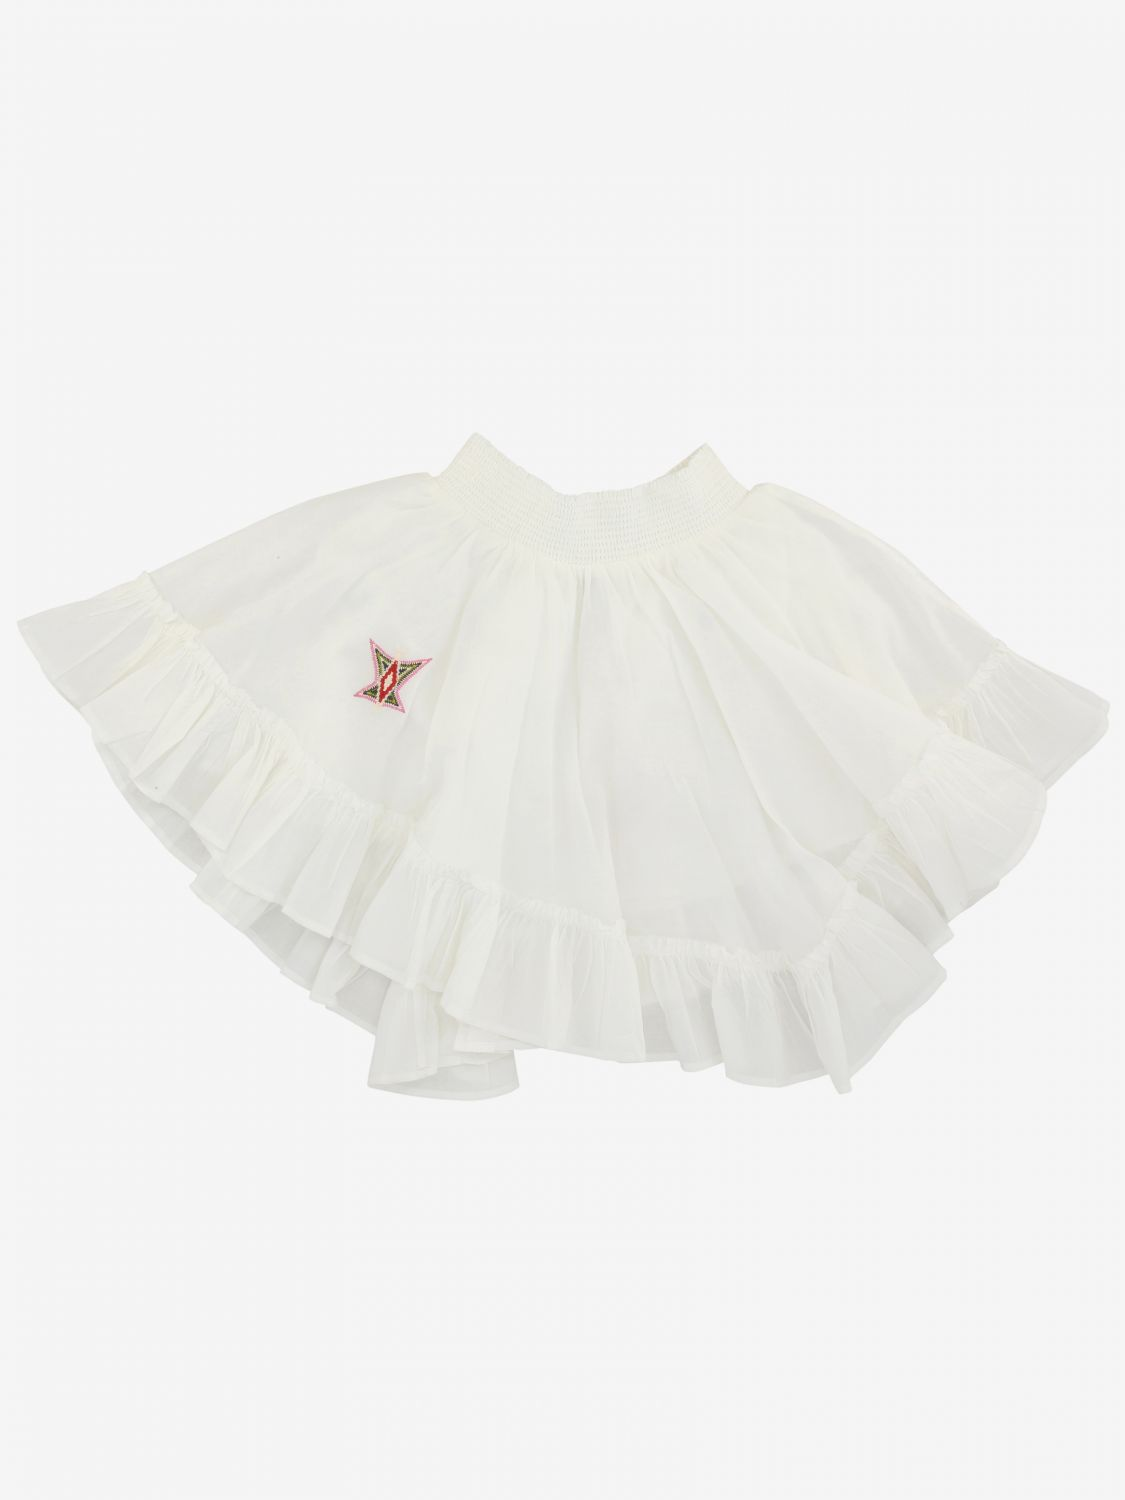 Zadig & Voltaire skirt with embroidery white 2